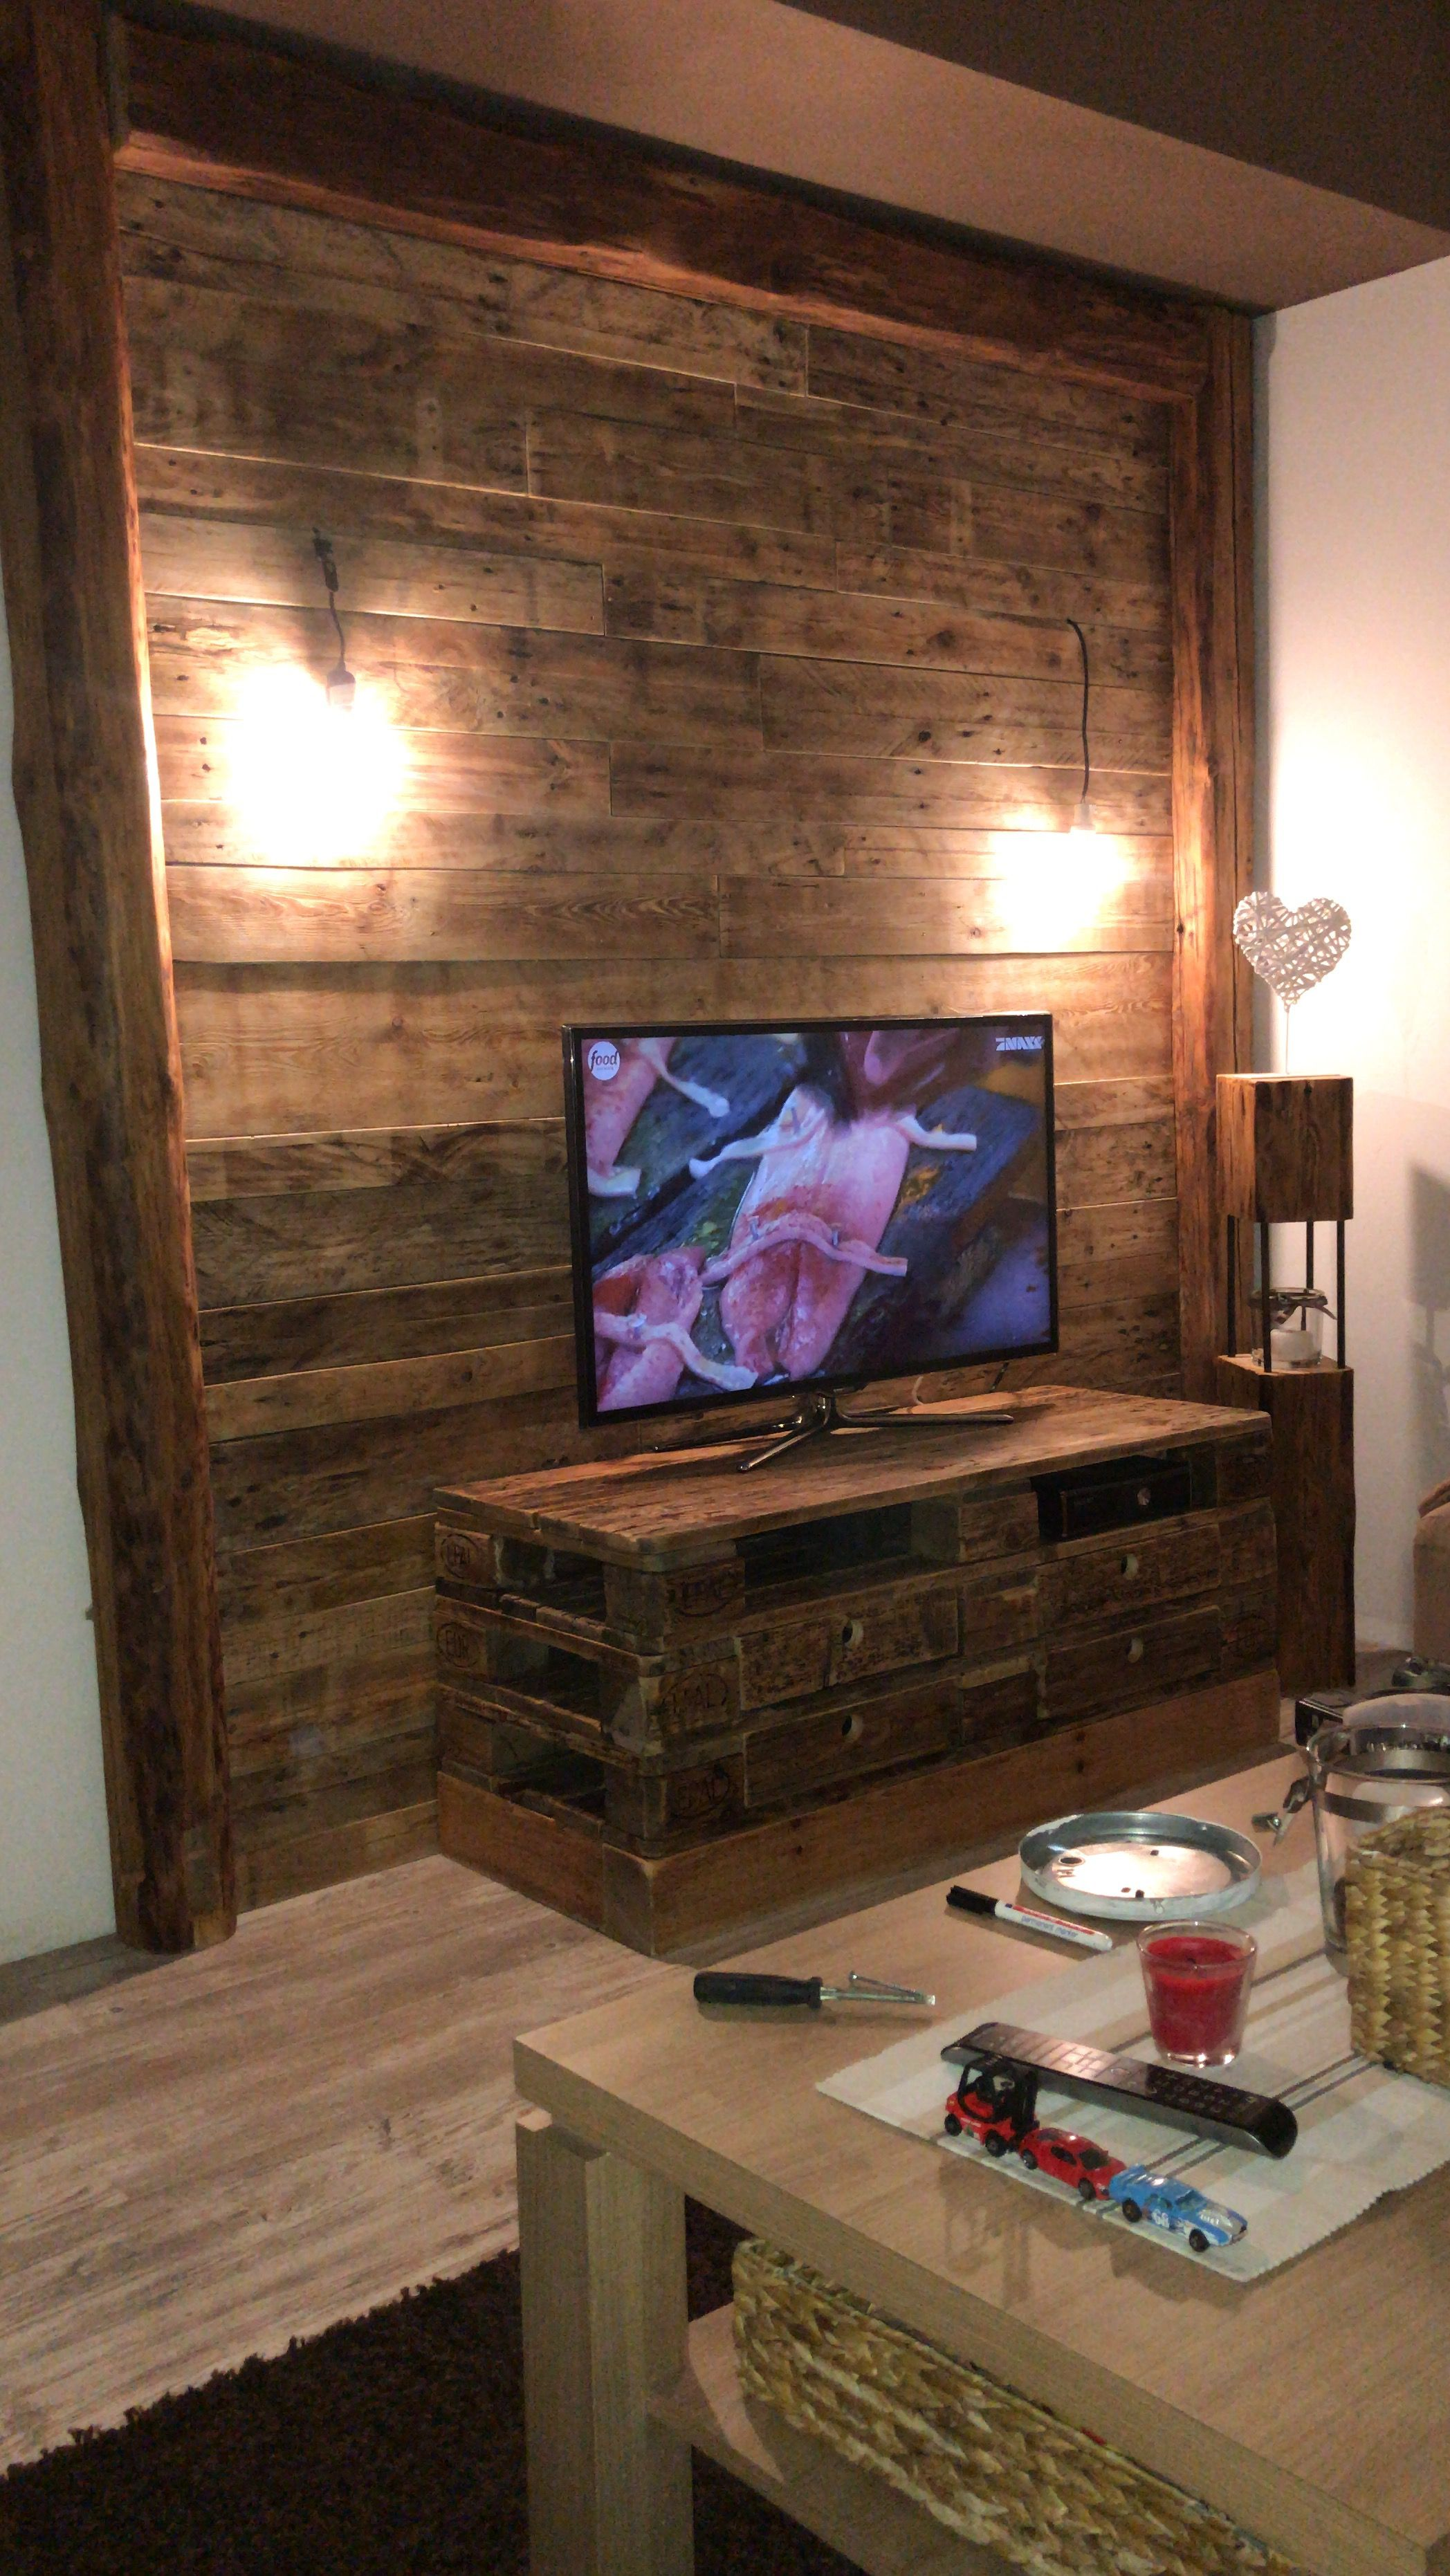 85 Top Wohnzimmer Wand Altholz